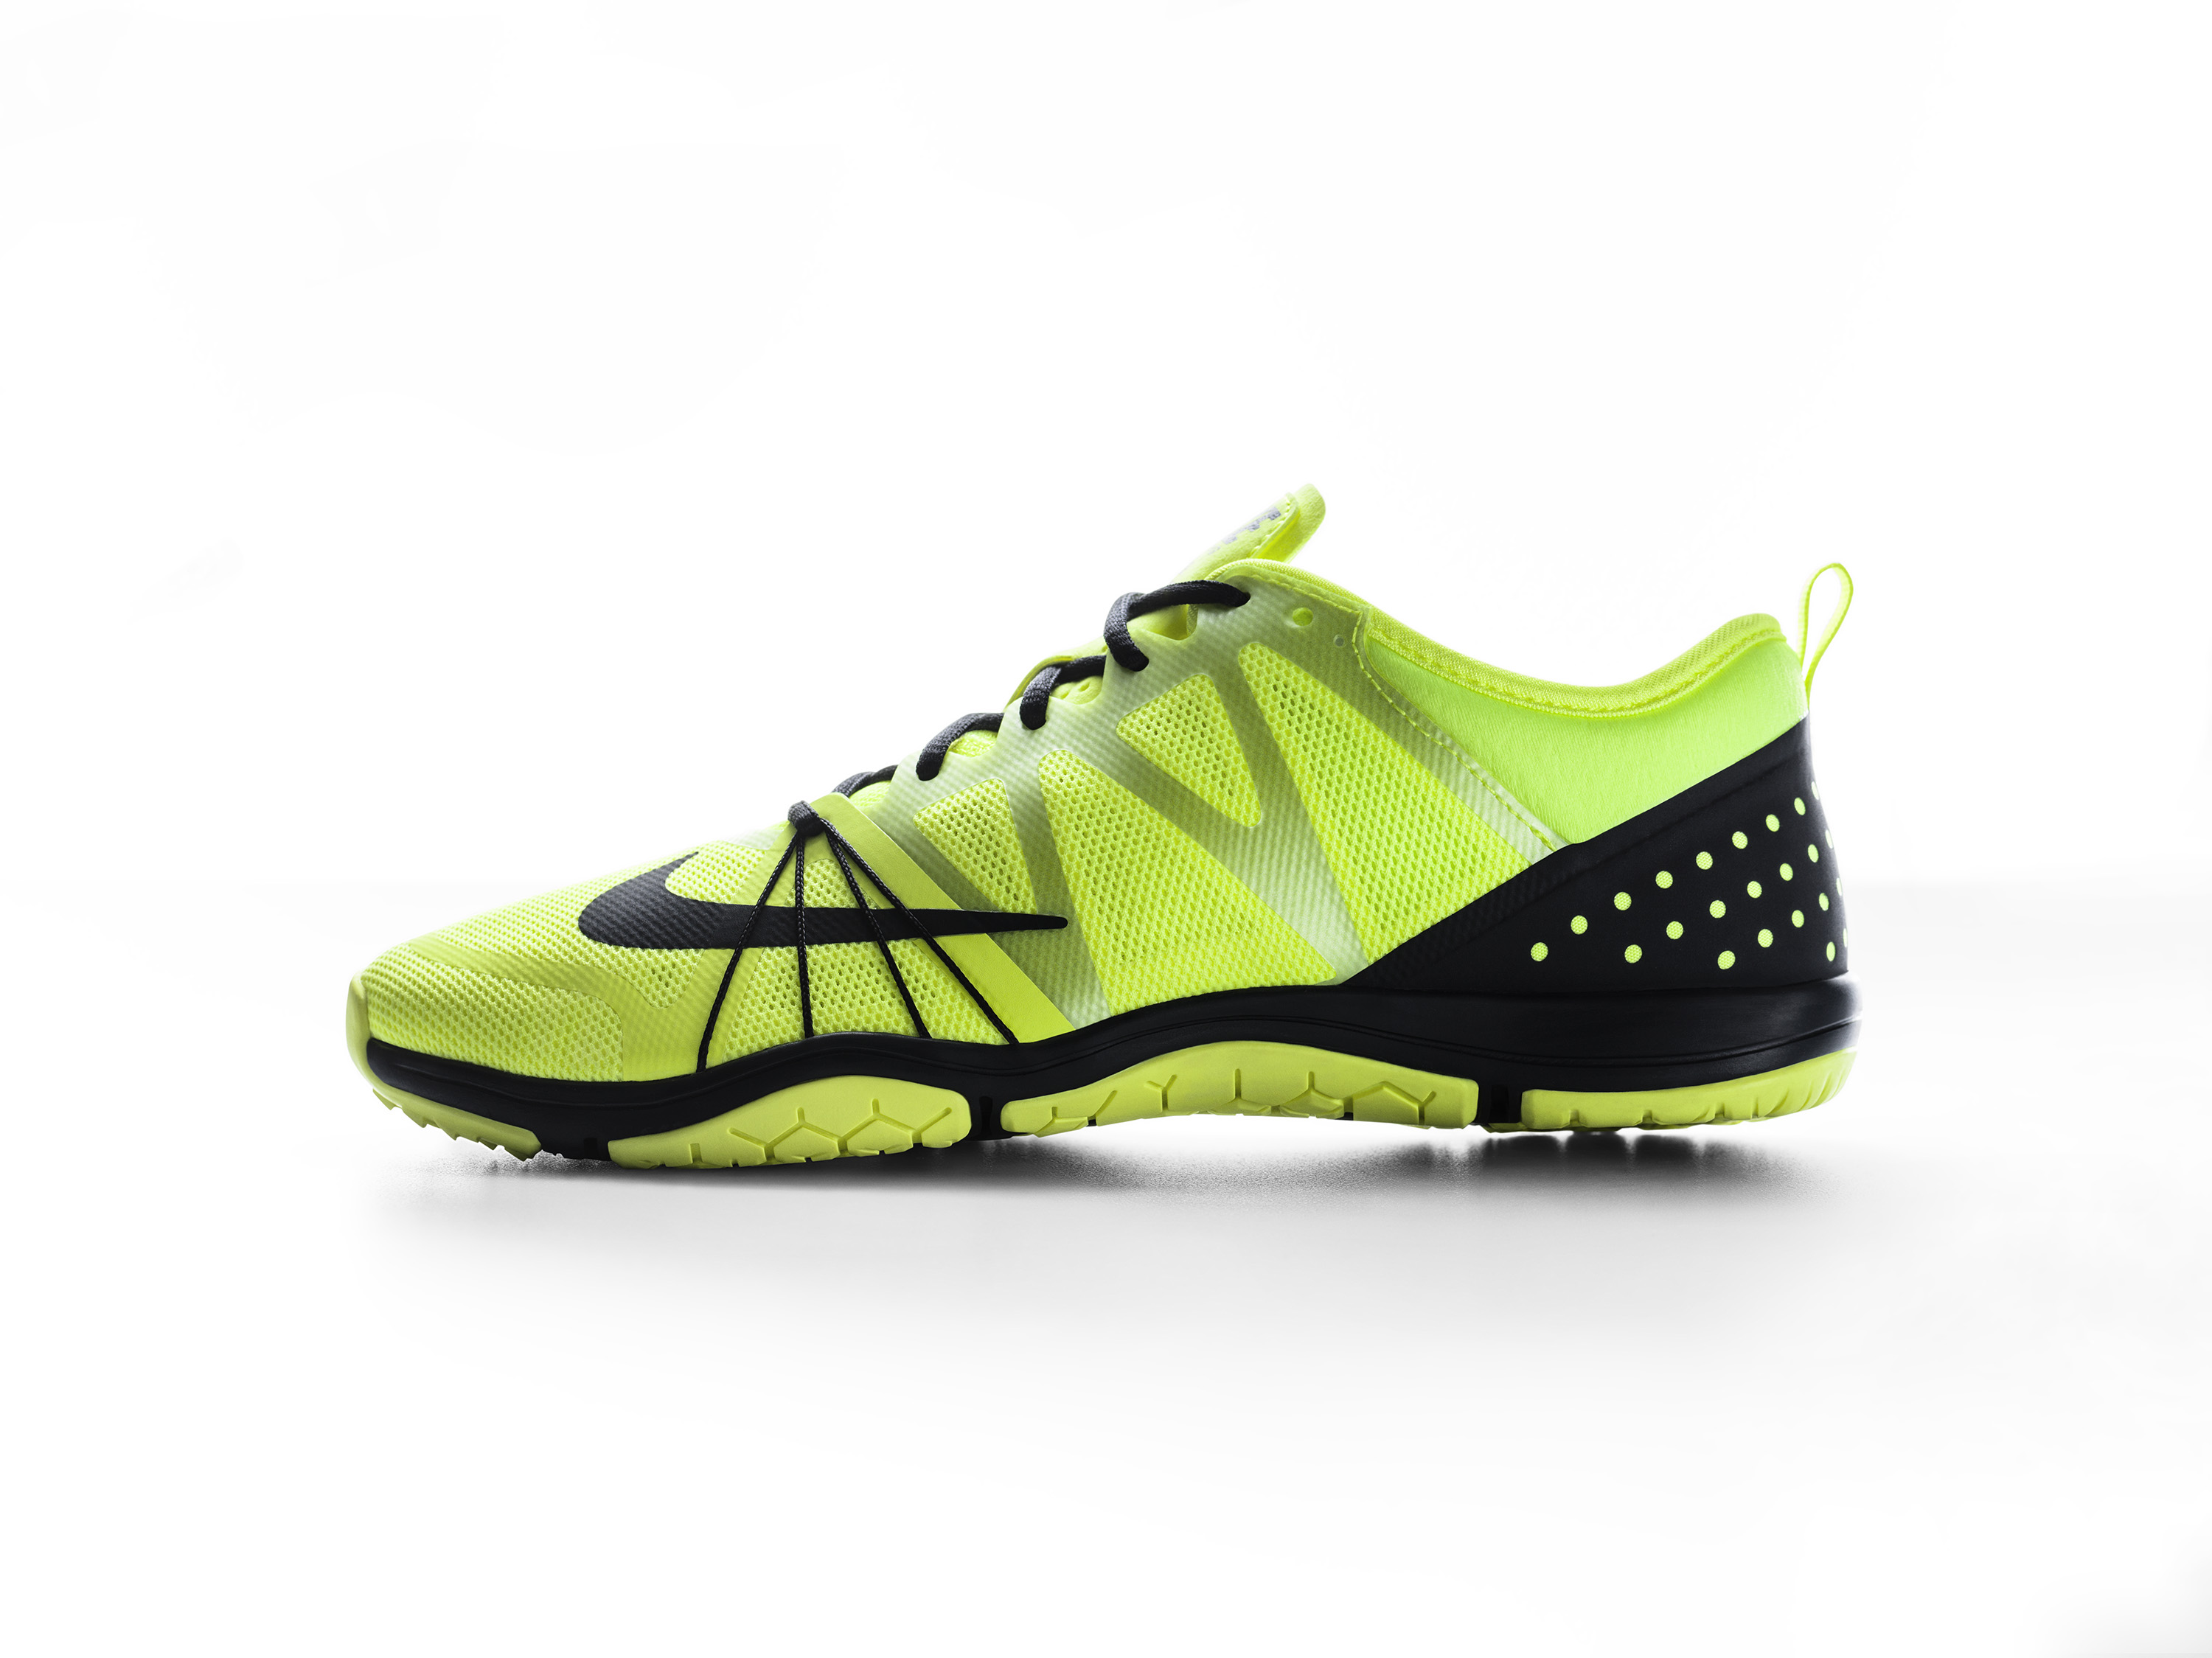 nike free cross compete women's yellow blazer